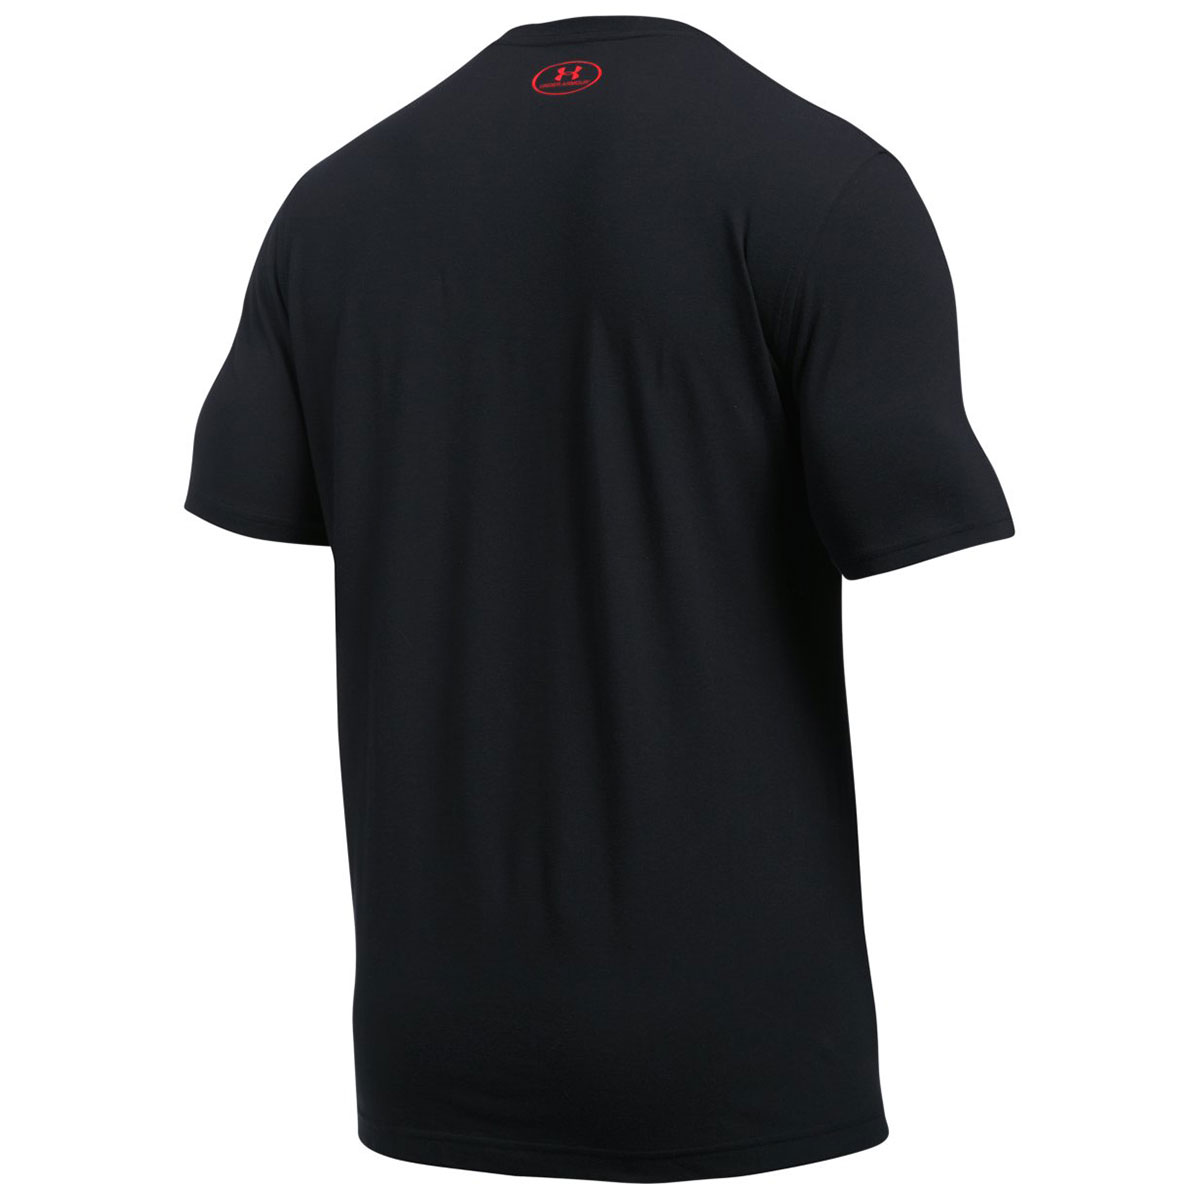 Under-Armour-Mens-UA-I-Will-Short-Sleeve-Charged-Cotton-Training-T-Shirt thumbnail 3